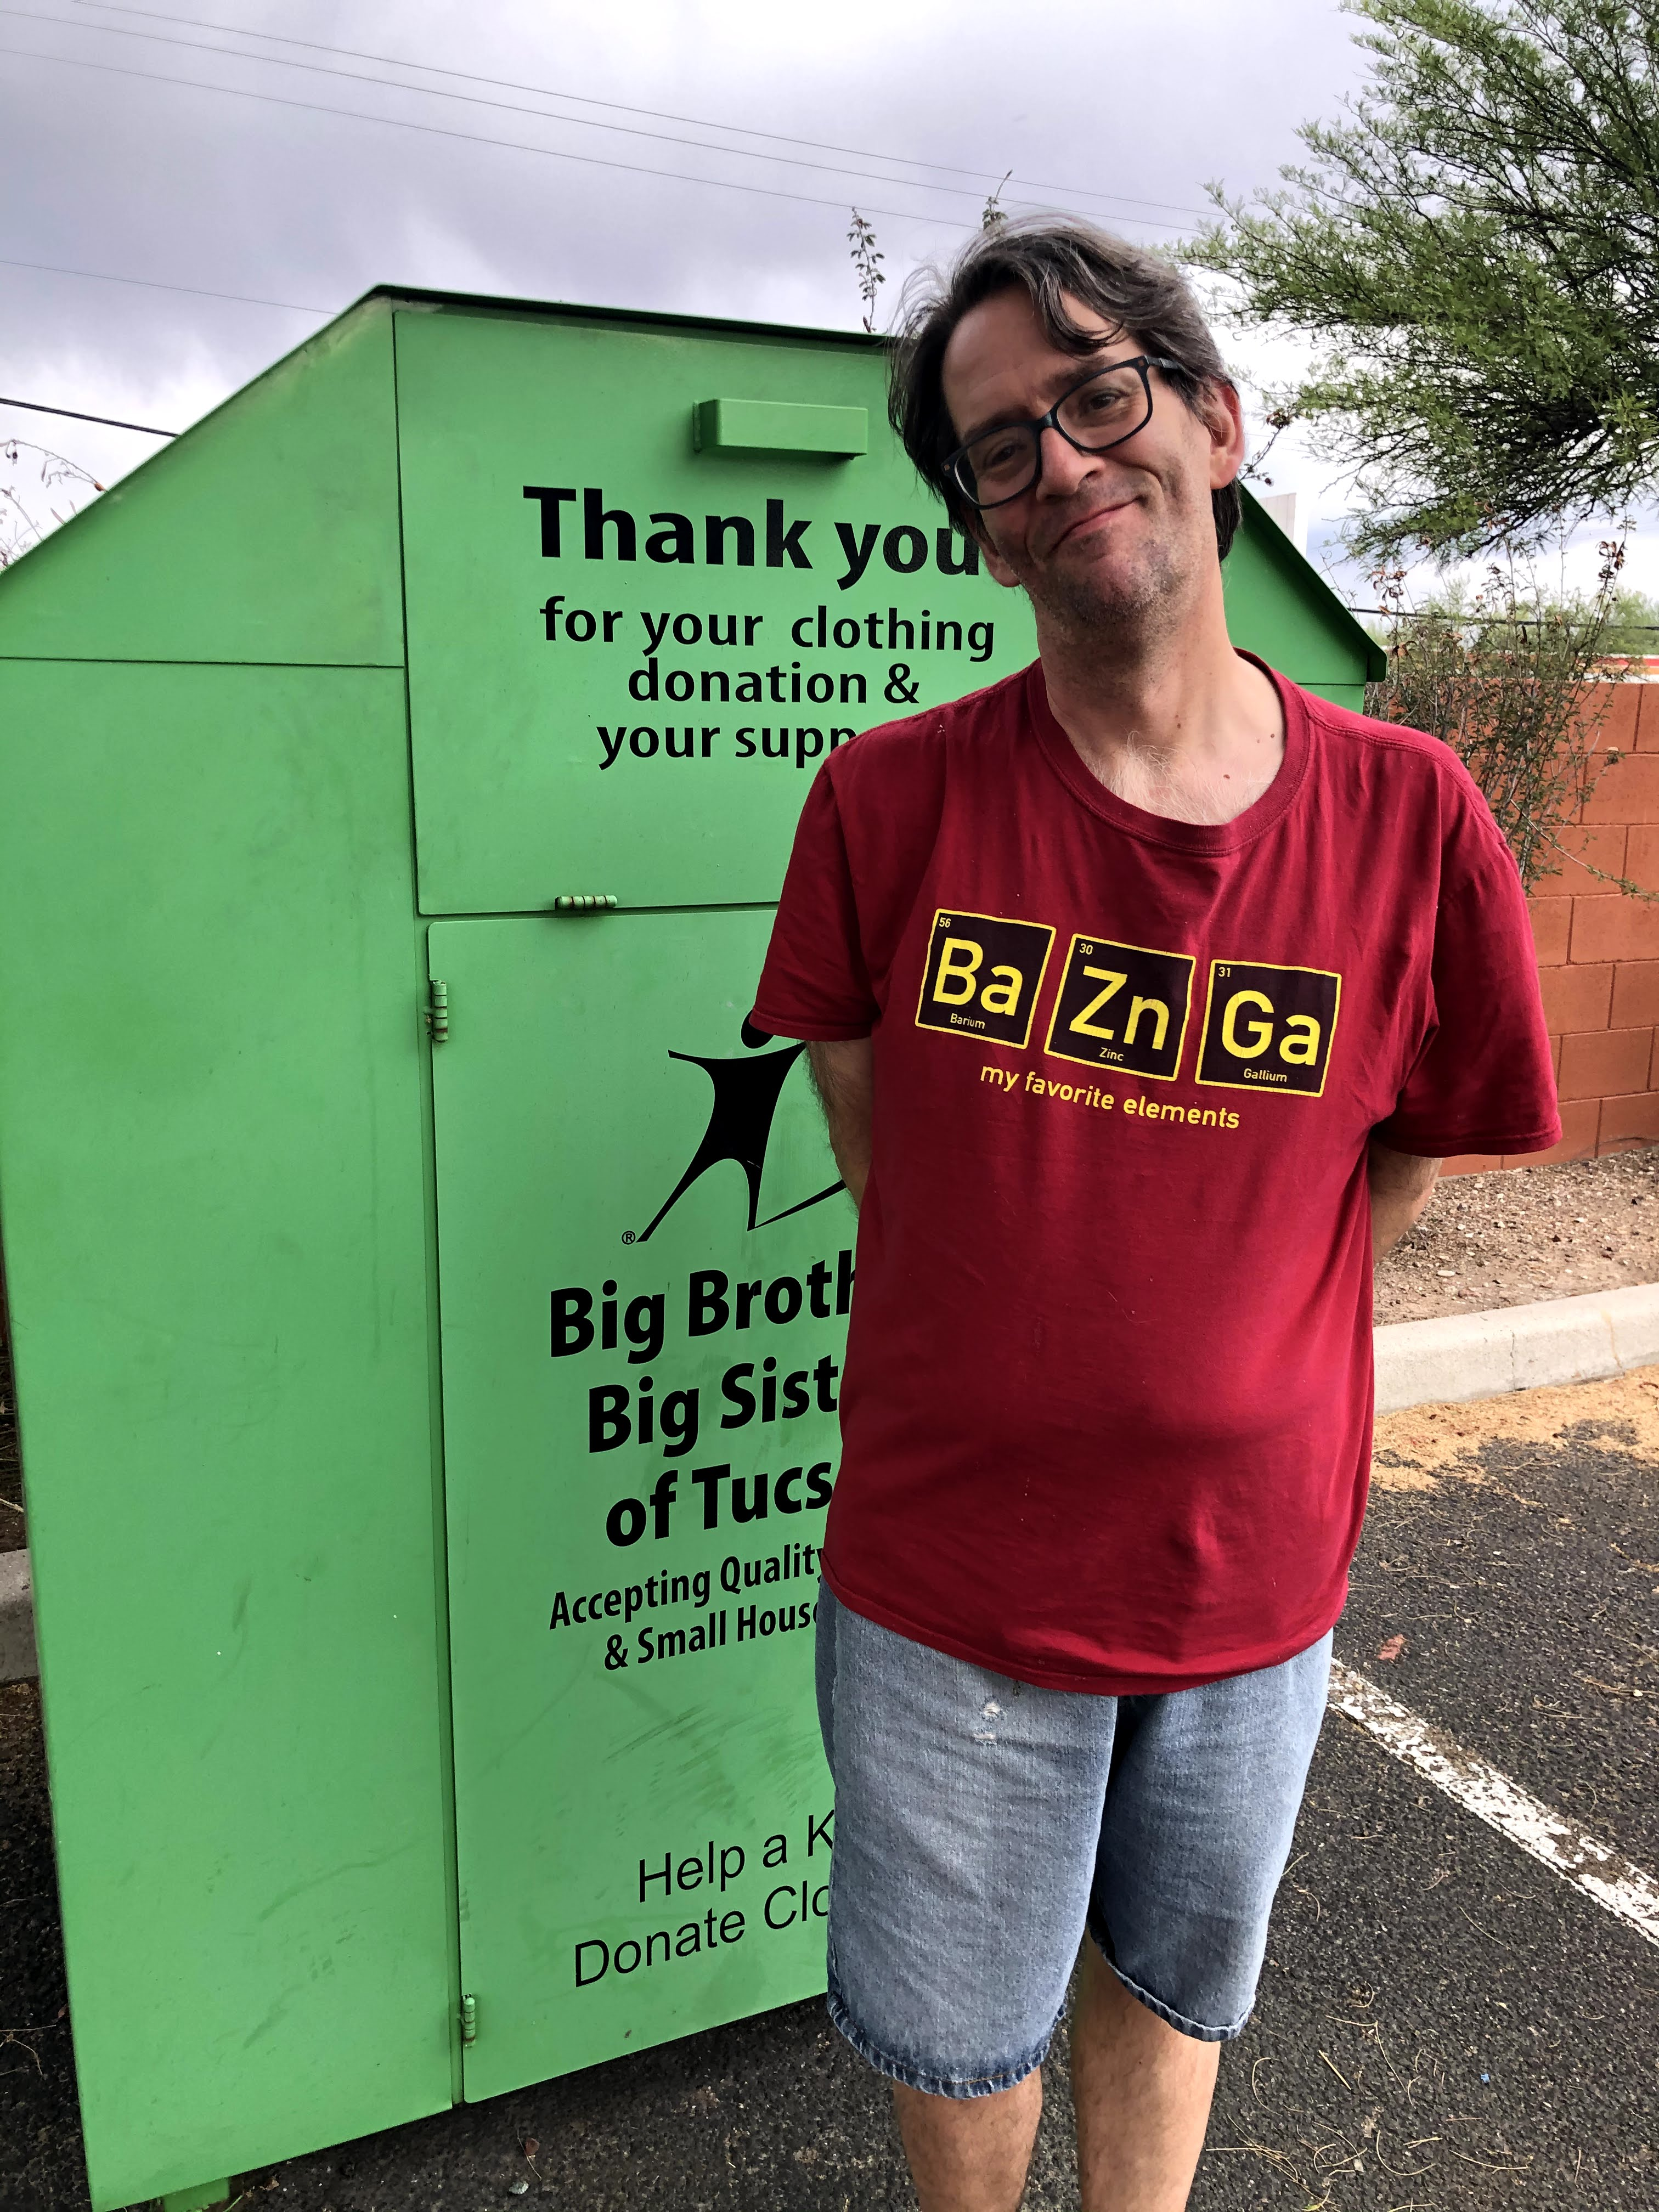 Big Brothers Big Sisters of Tucson clothing bin with James standing in front.